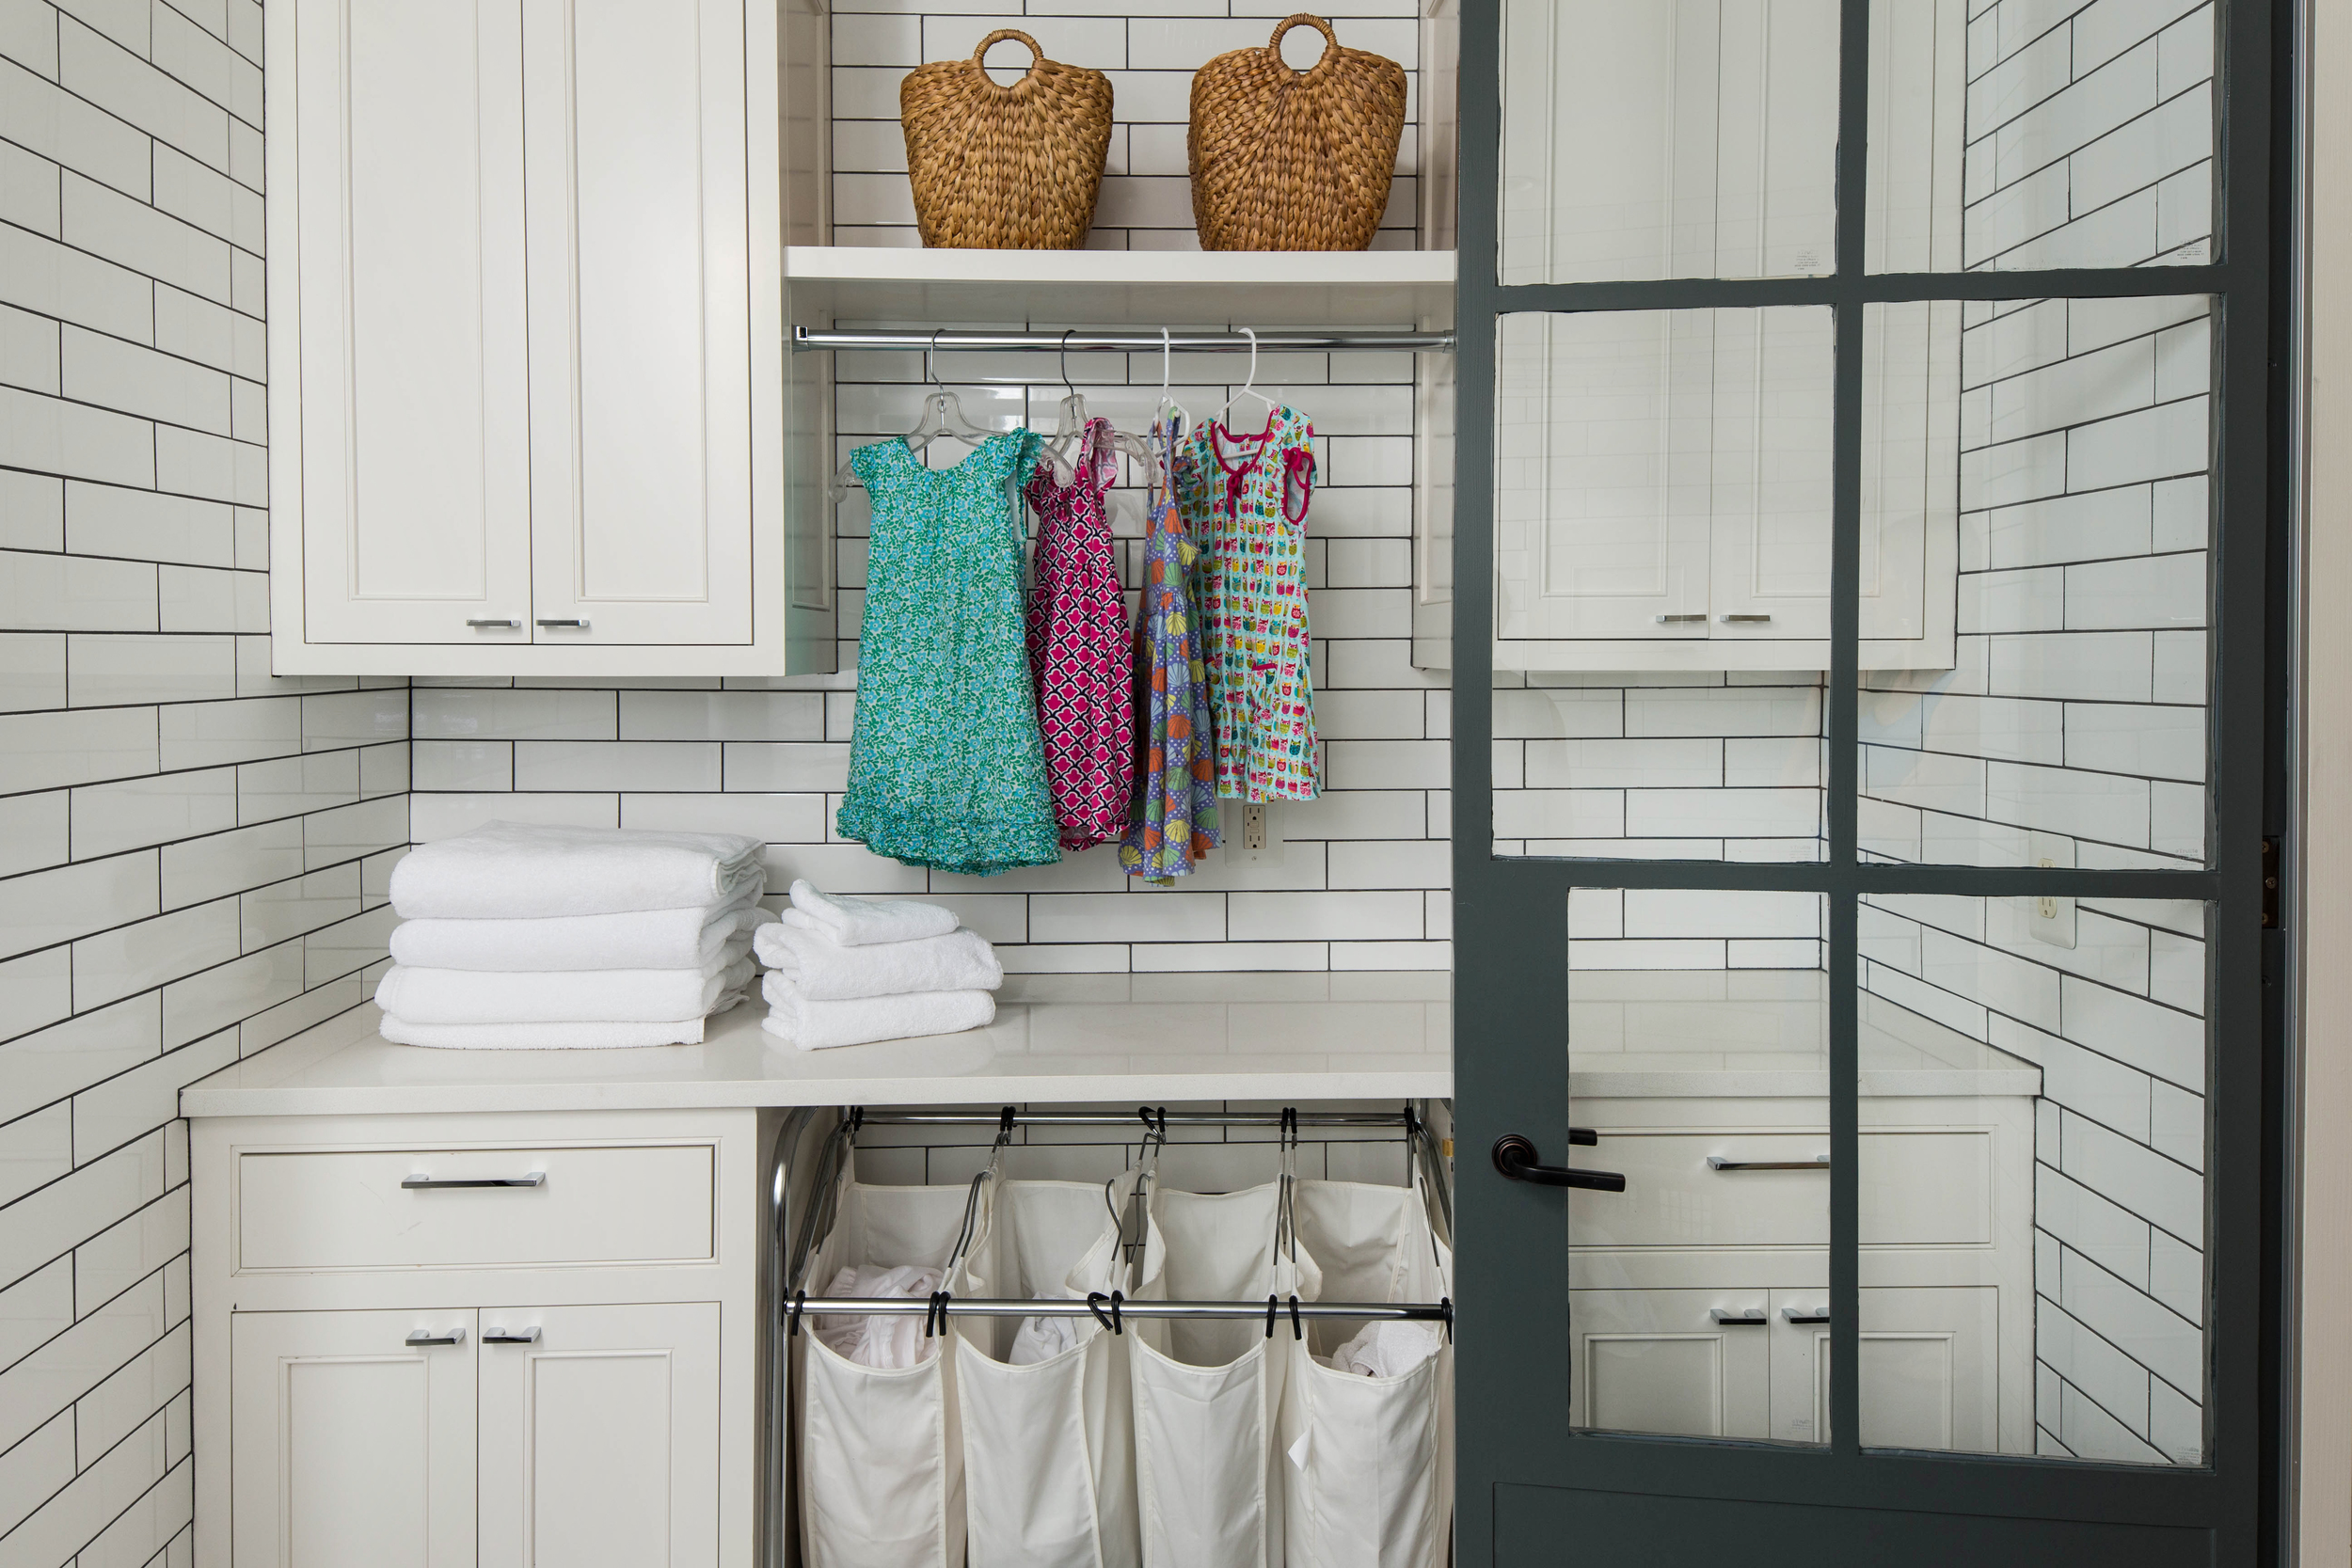 Laundry service space.